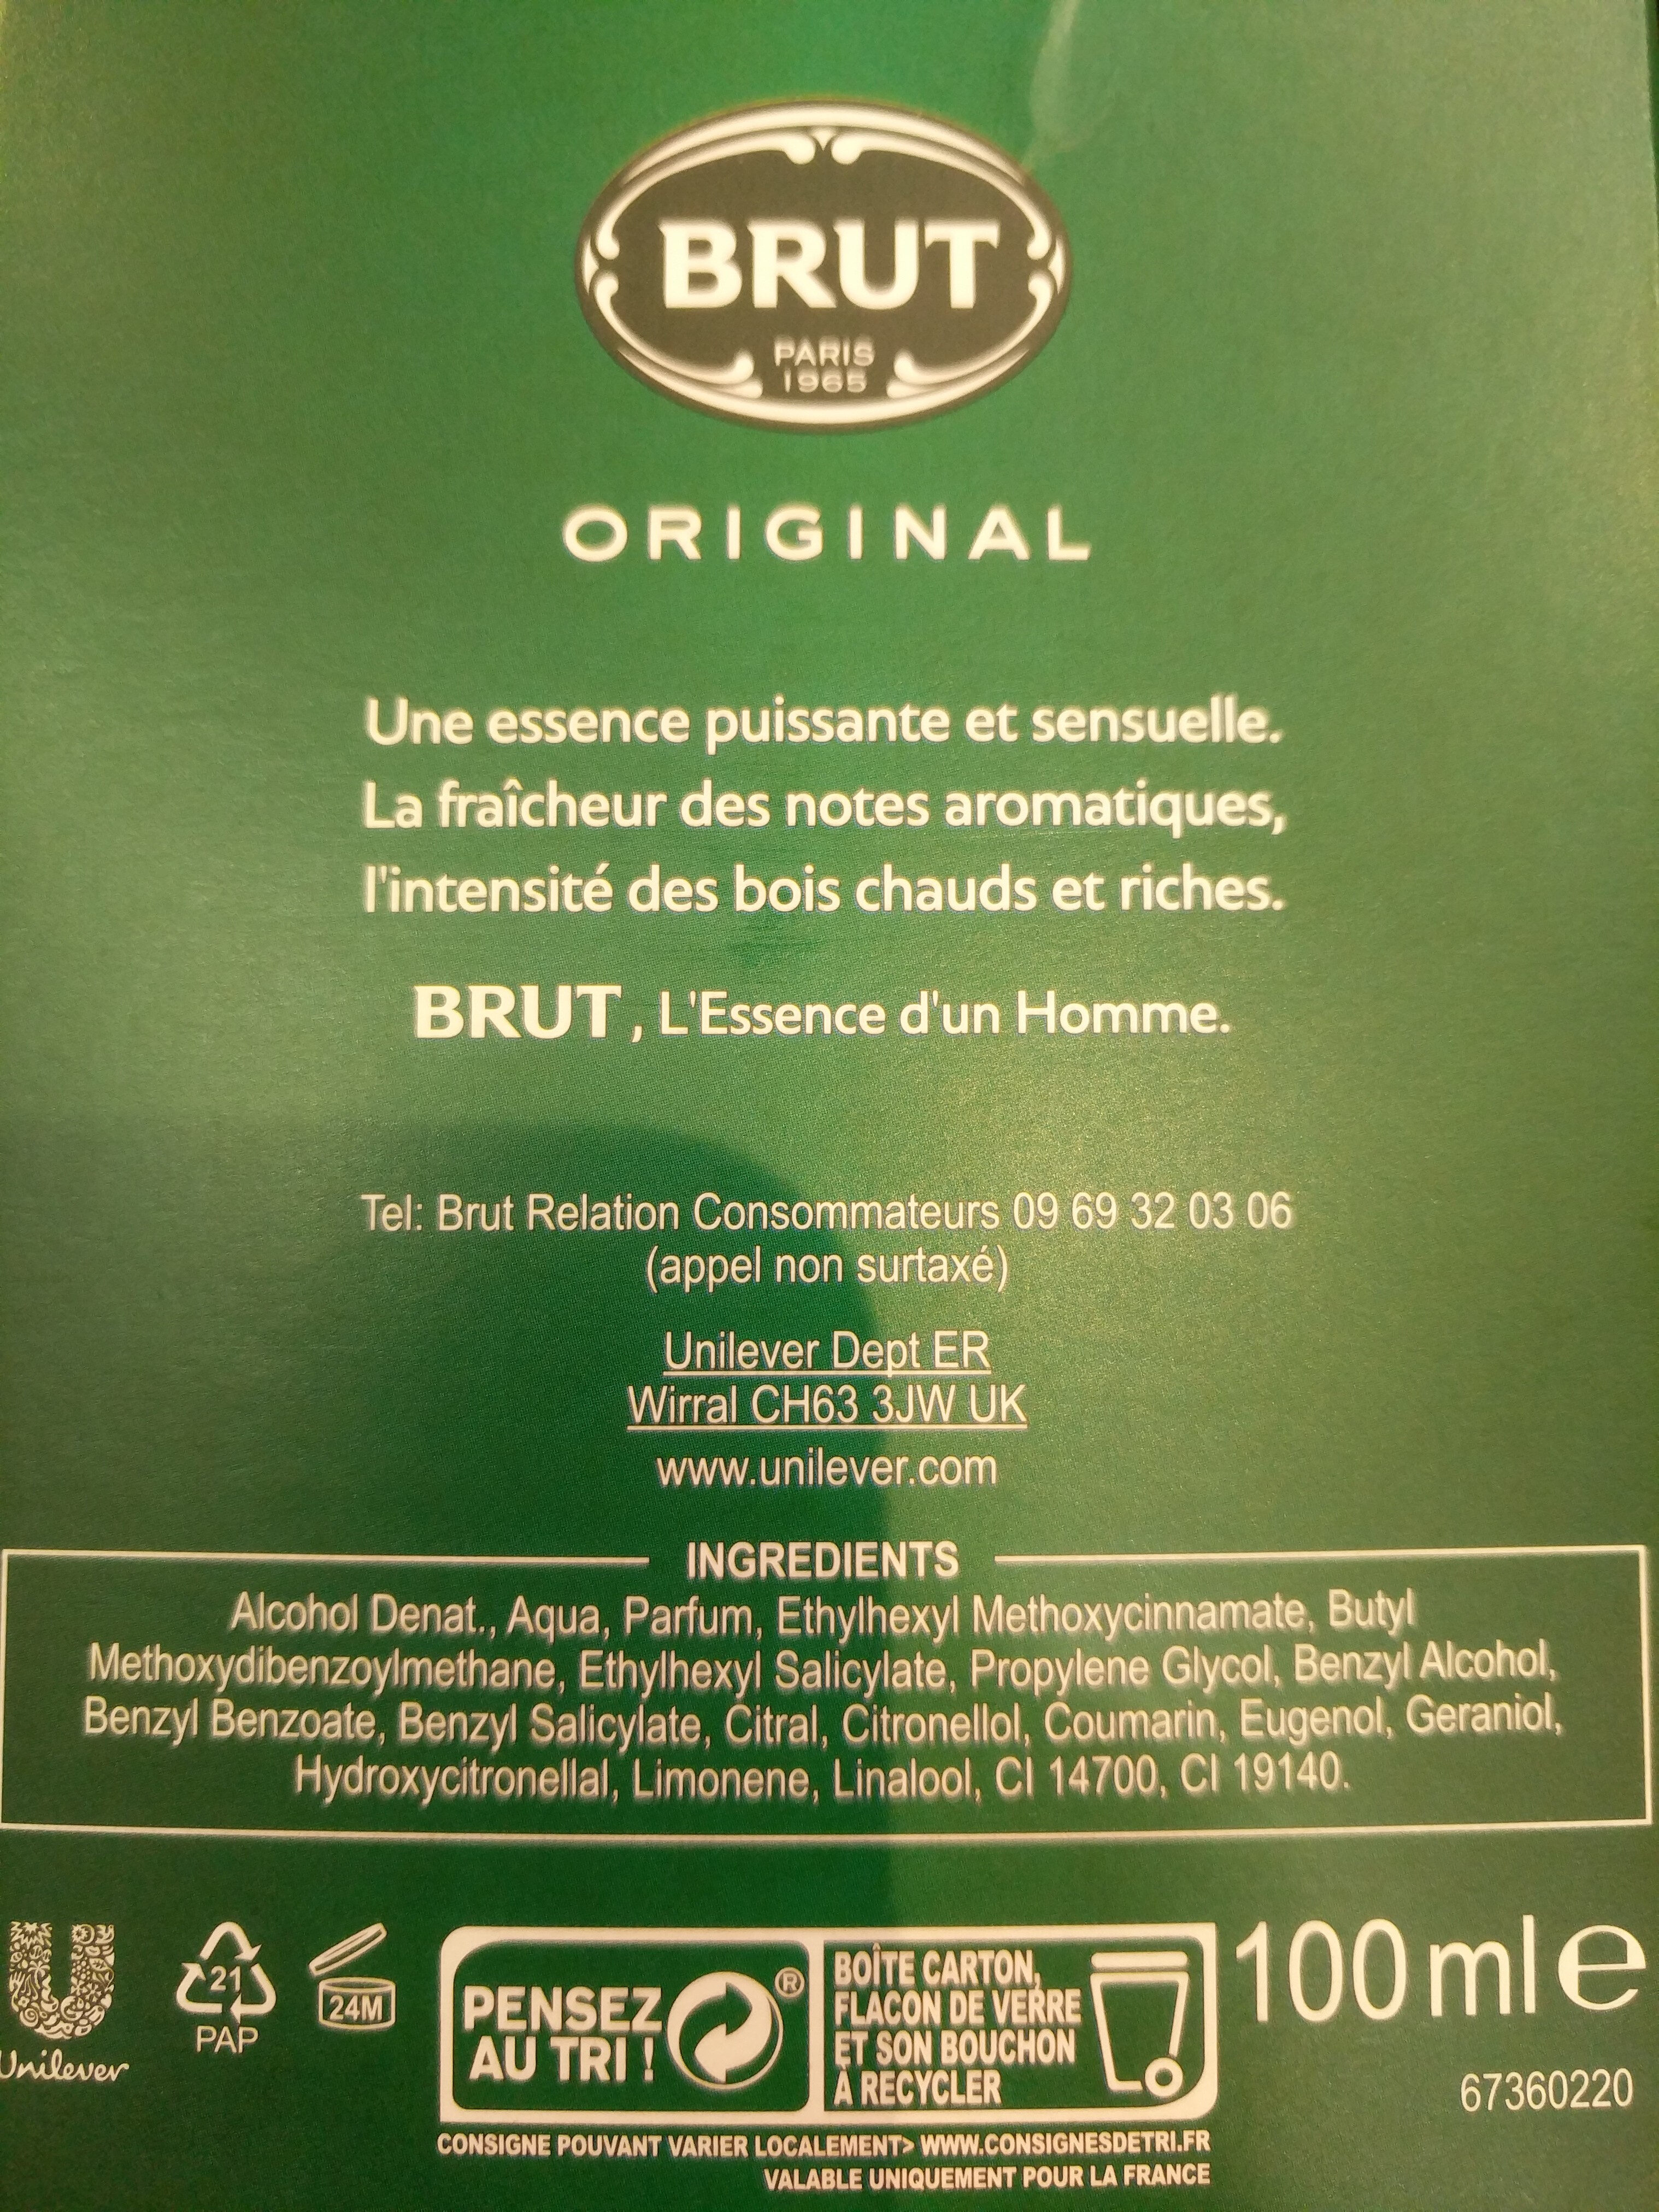 Brut Eau De Toilette Original - Ingredients - fr